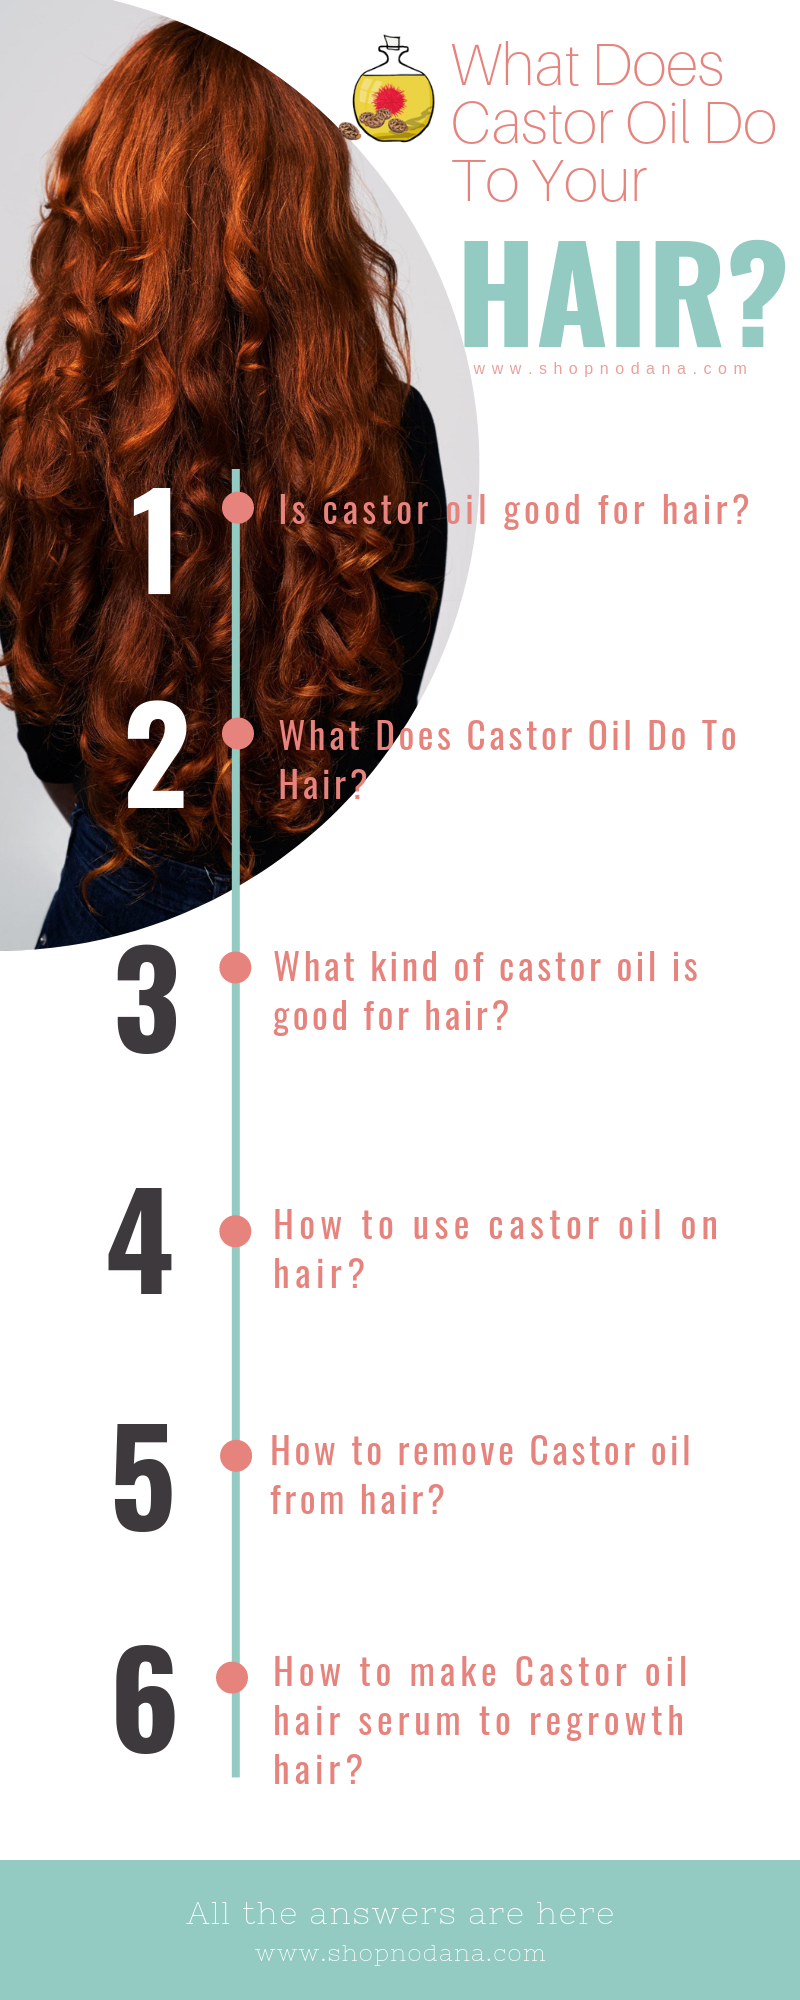 Castor oil benefits for hair